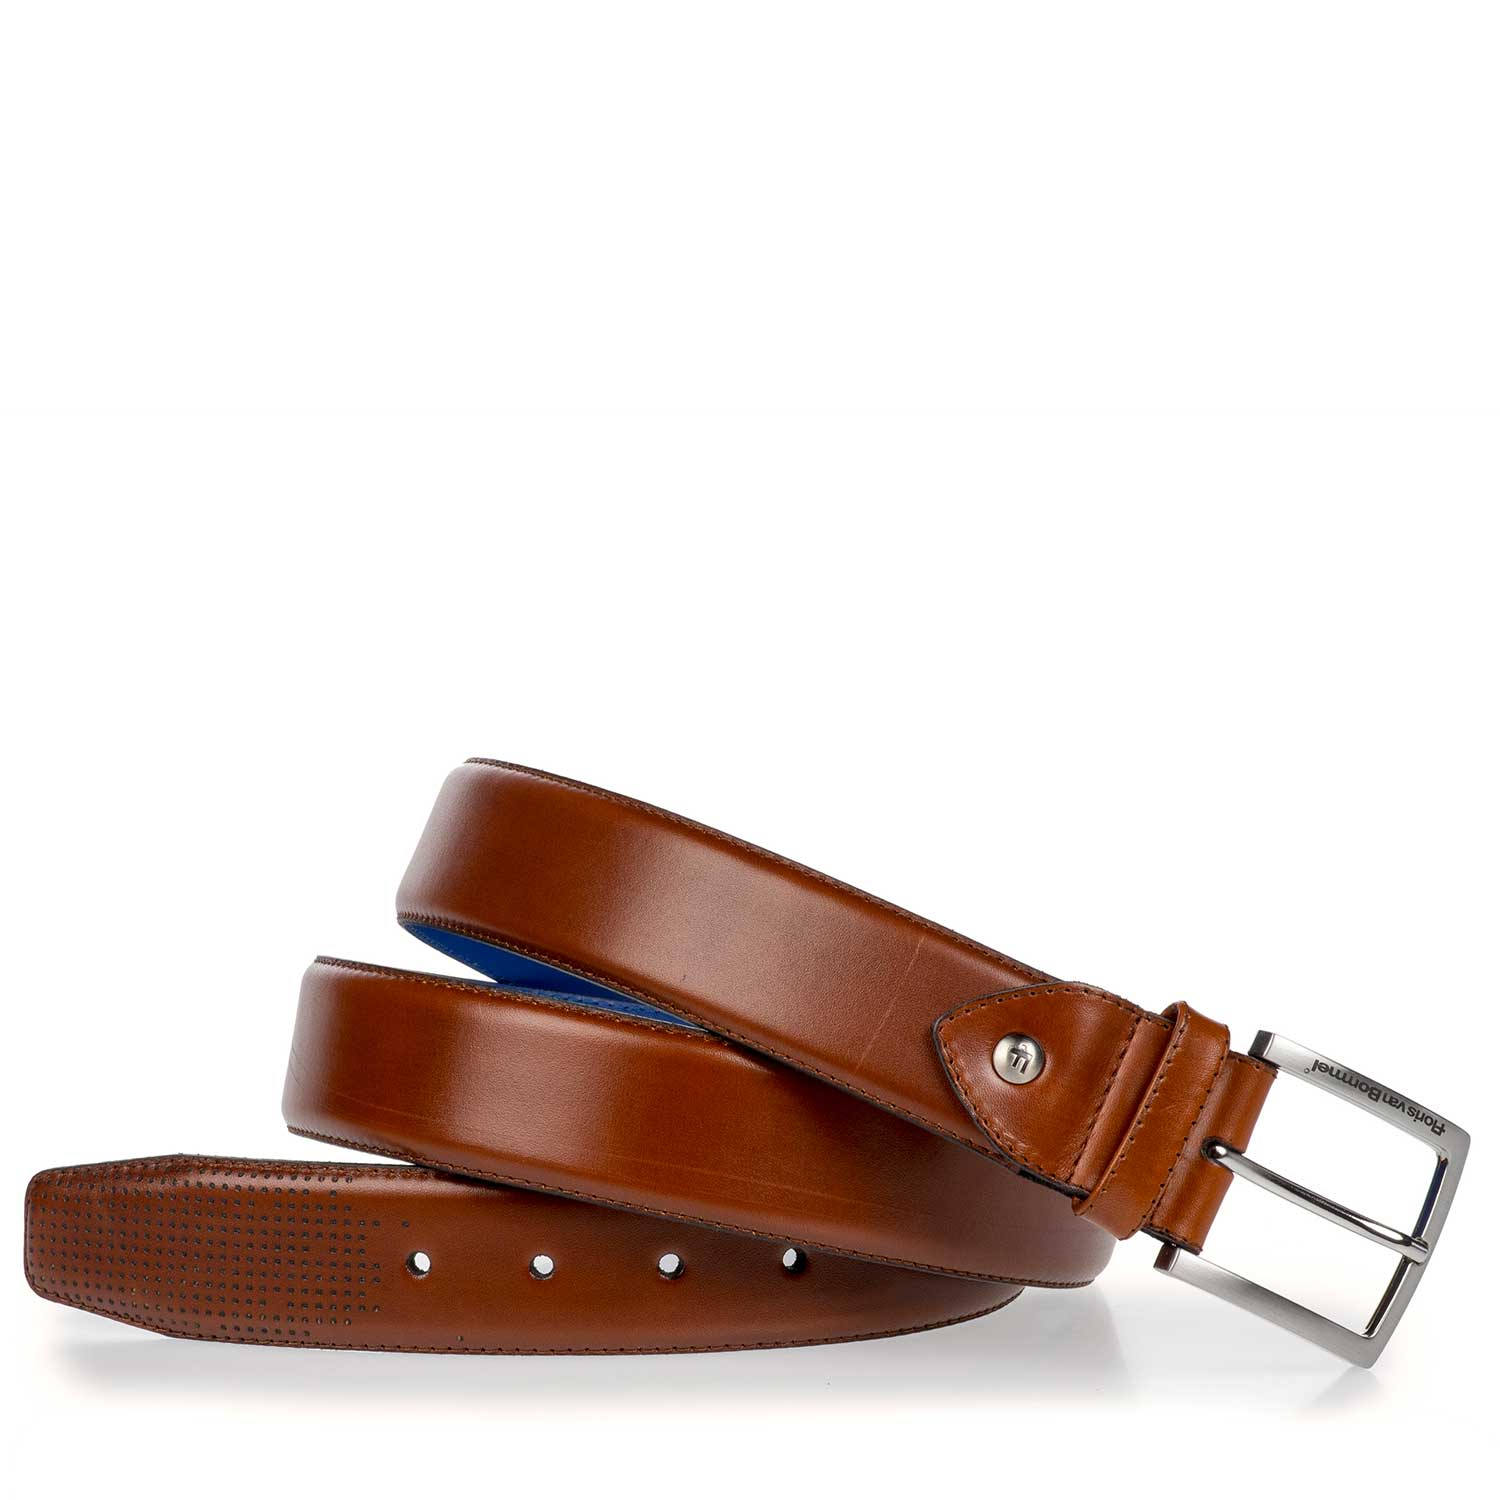 75187/01 - Cognac-coloured leather belt